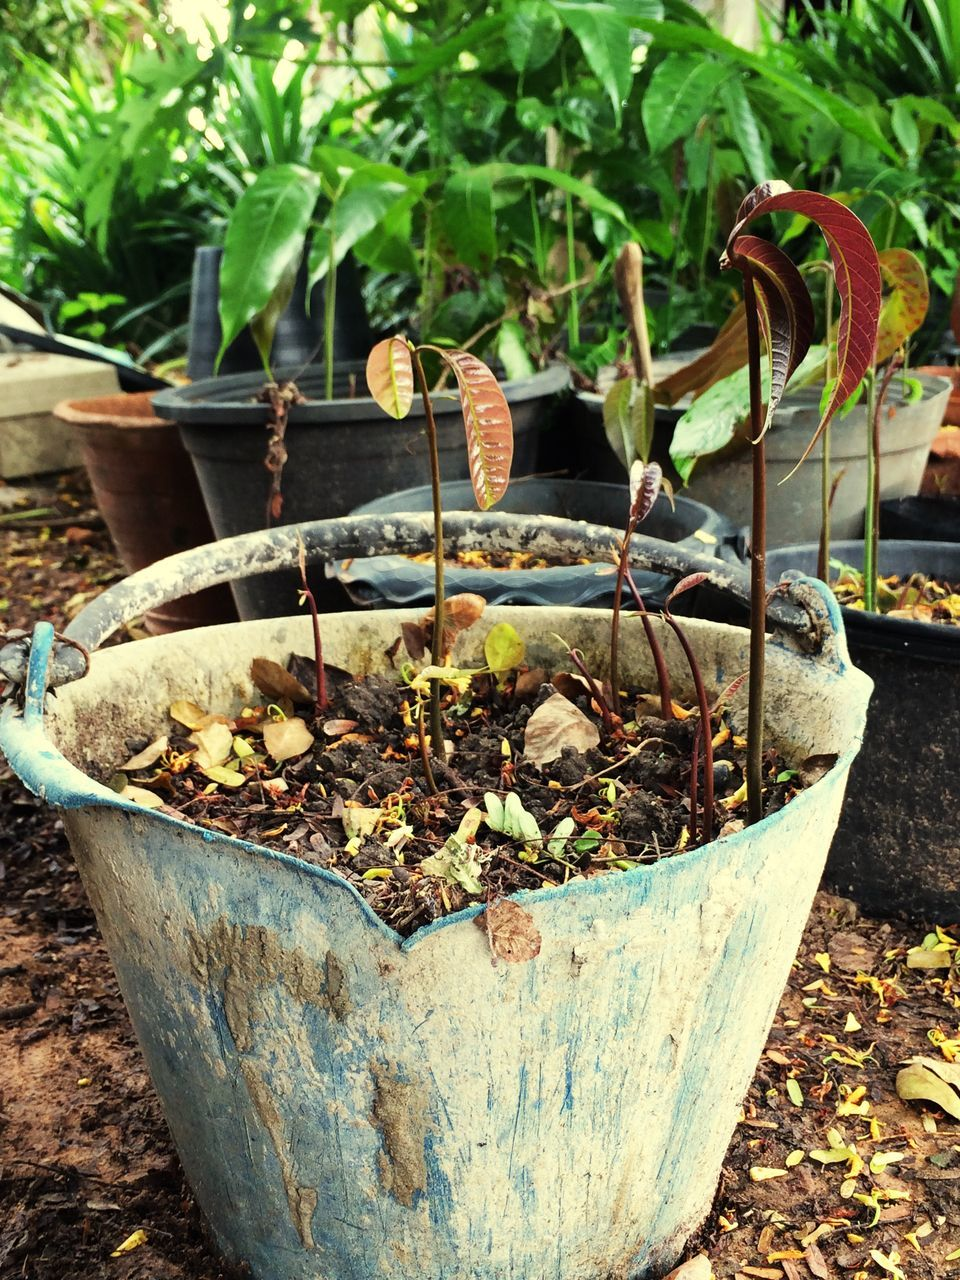 growth, potted plant, plant, day, no people, outdoors, nature, close-up, leaf, tree, beauty in nature